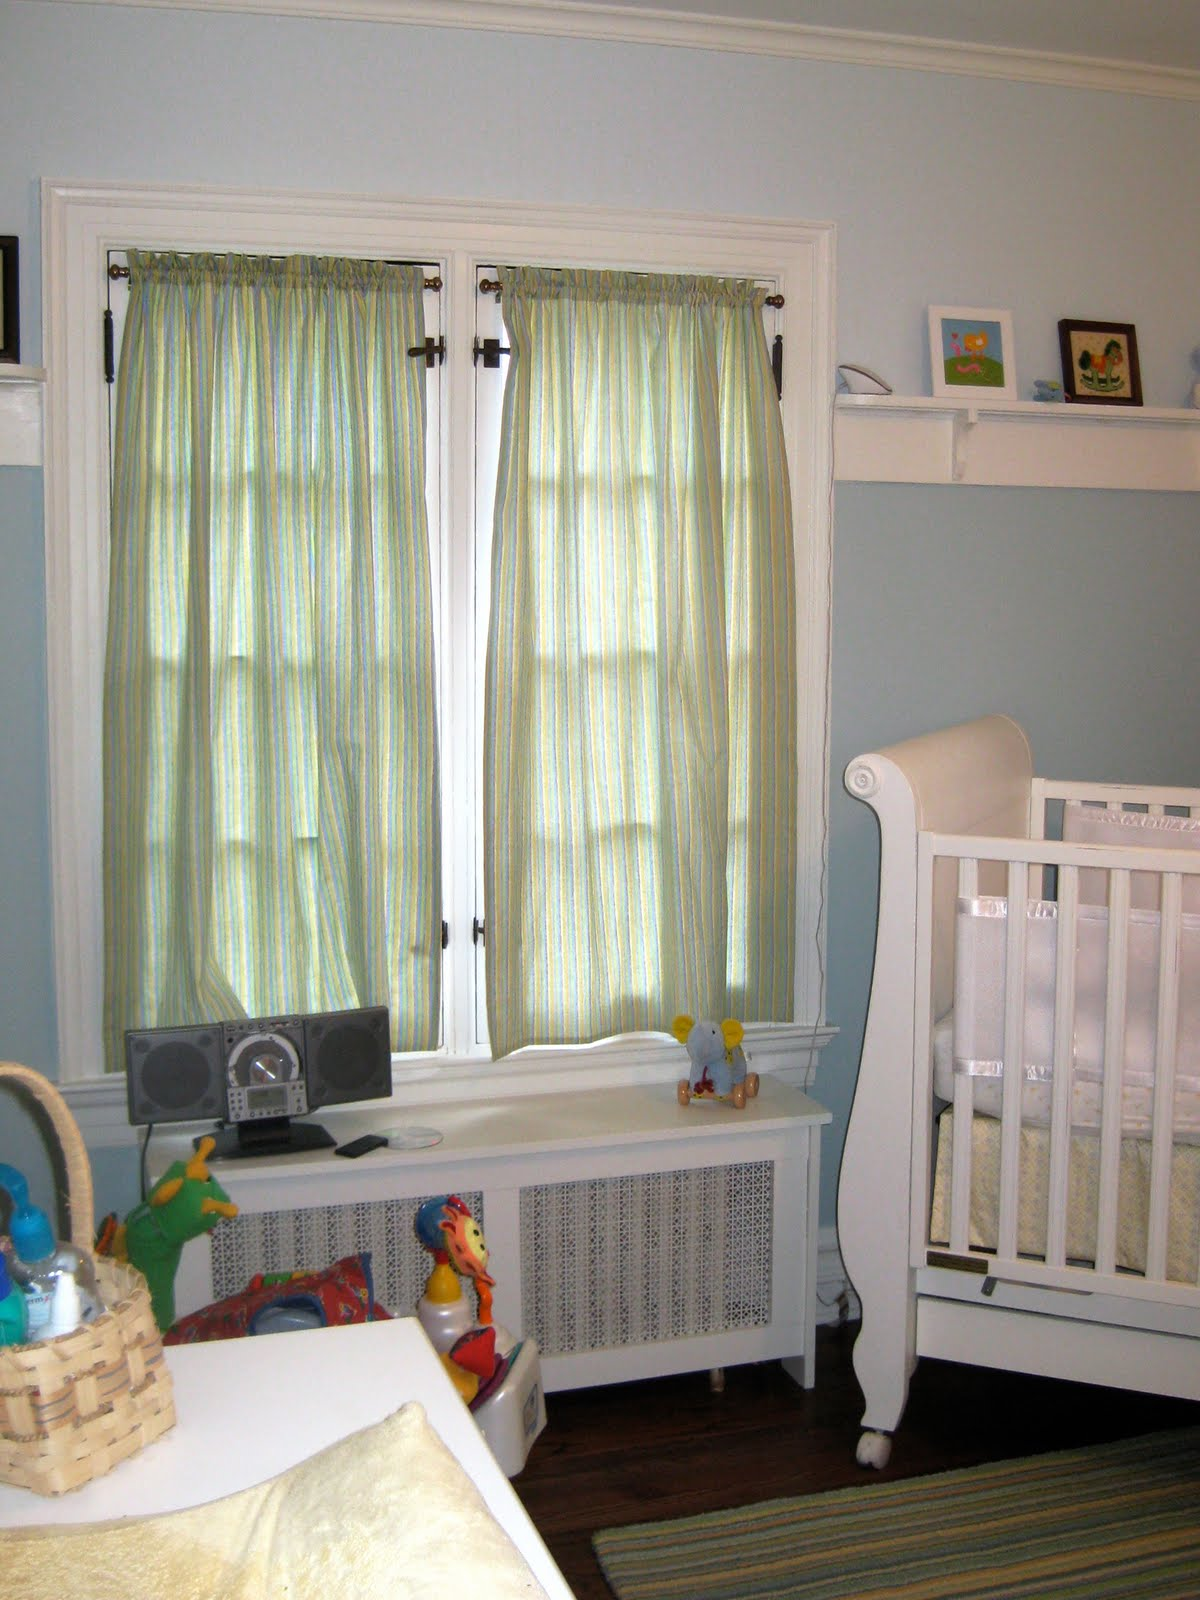 Here Is The Completed Room With Window Treatments And A Cover For Radiator